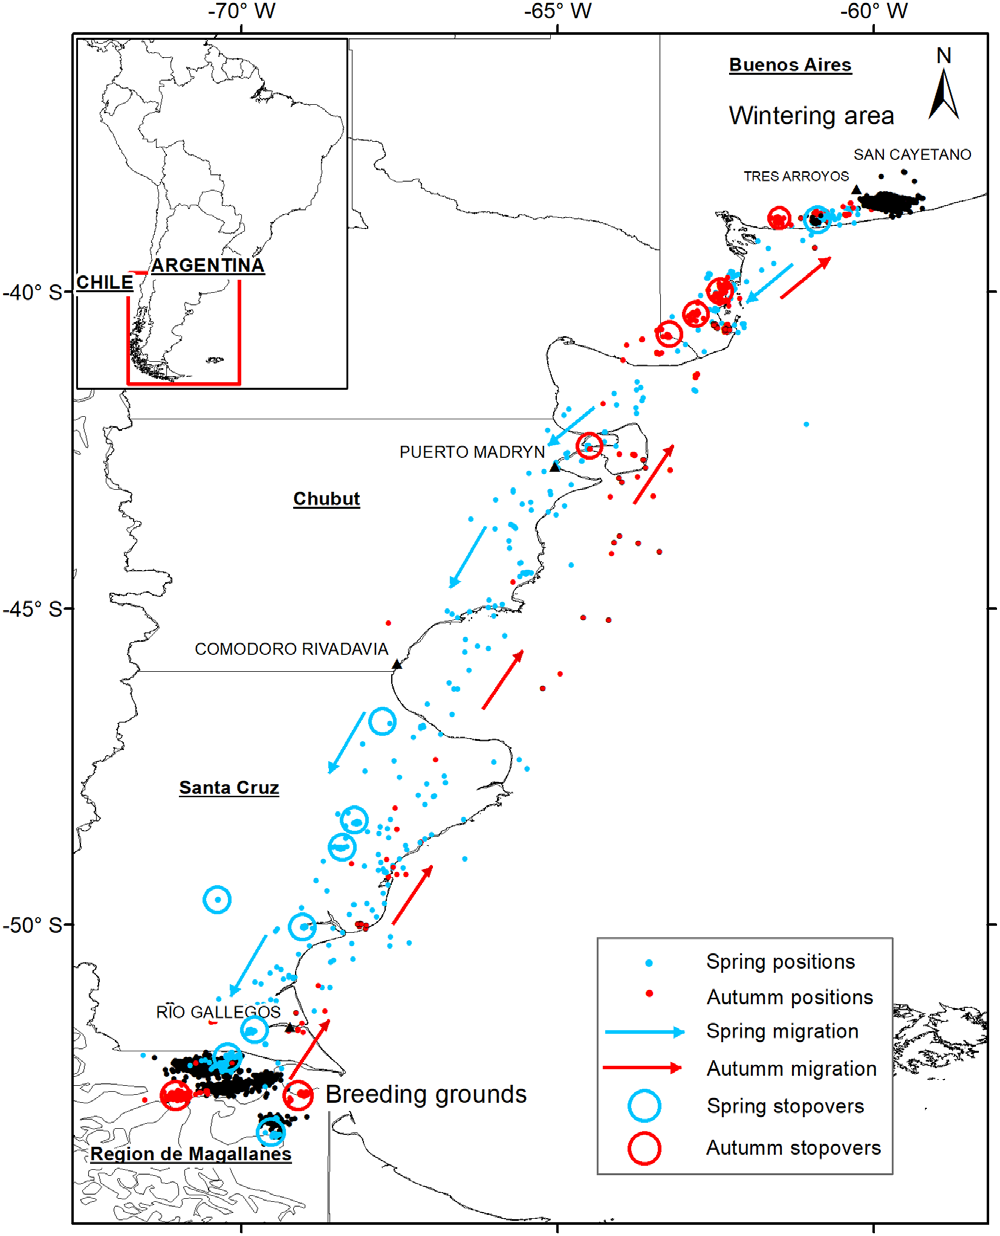 Migration pathways of ruddy-headed geese tracked in 2015–2018. Grey (blue) indicates spring migration and black (red) autumn migration. Circles show stopovers during spring migration and autumn migration. Black points indicate wintering grounds in Buenos Aires province and specified breeding grounds in Patagonia. (From [Pedrana et al., 2020])